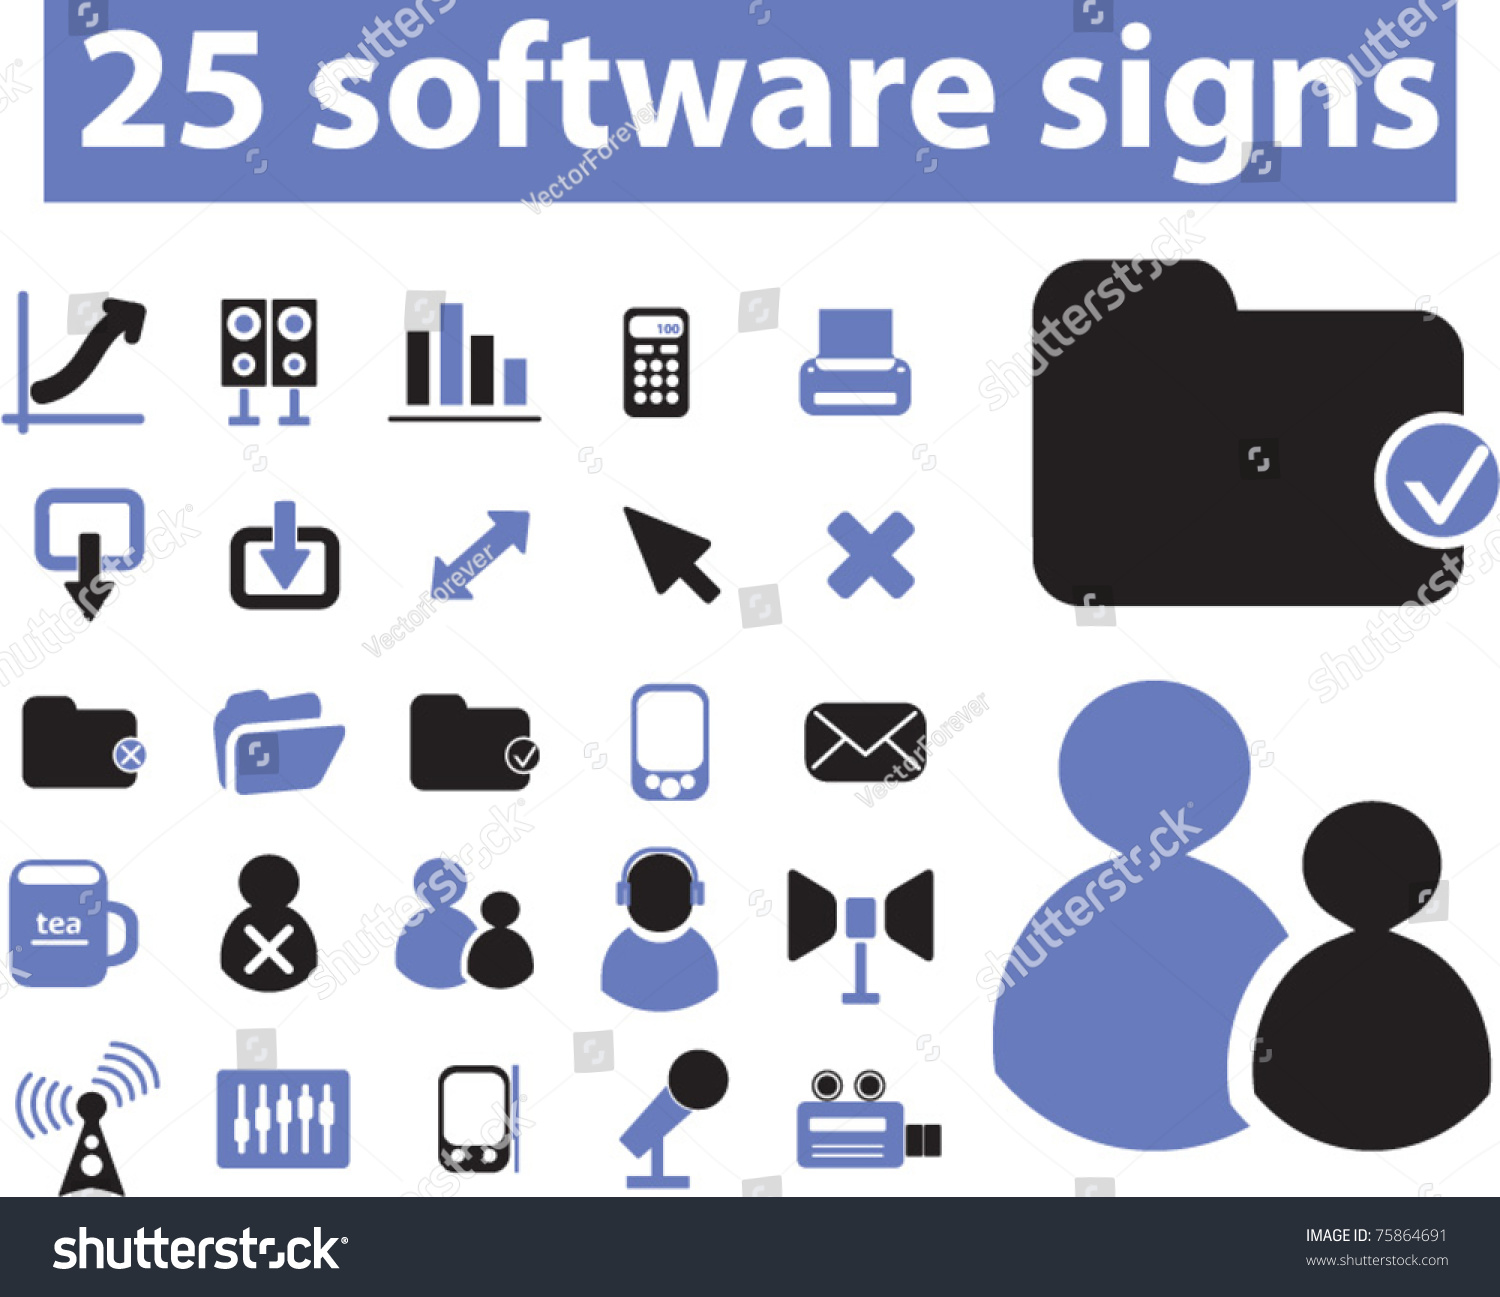 25 software signs icons vector 75864691 shutterstock Vector image software